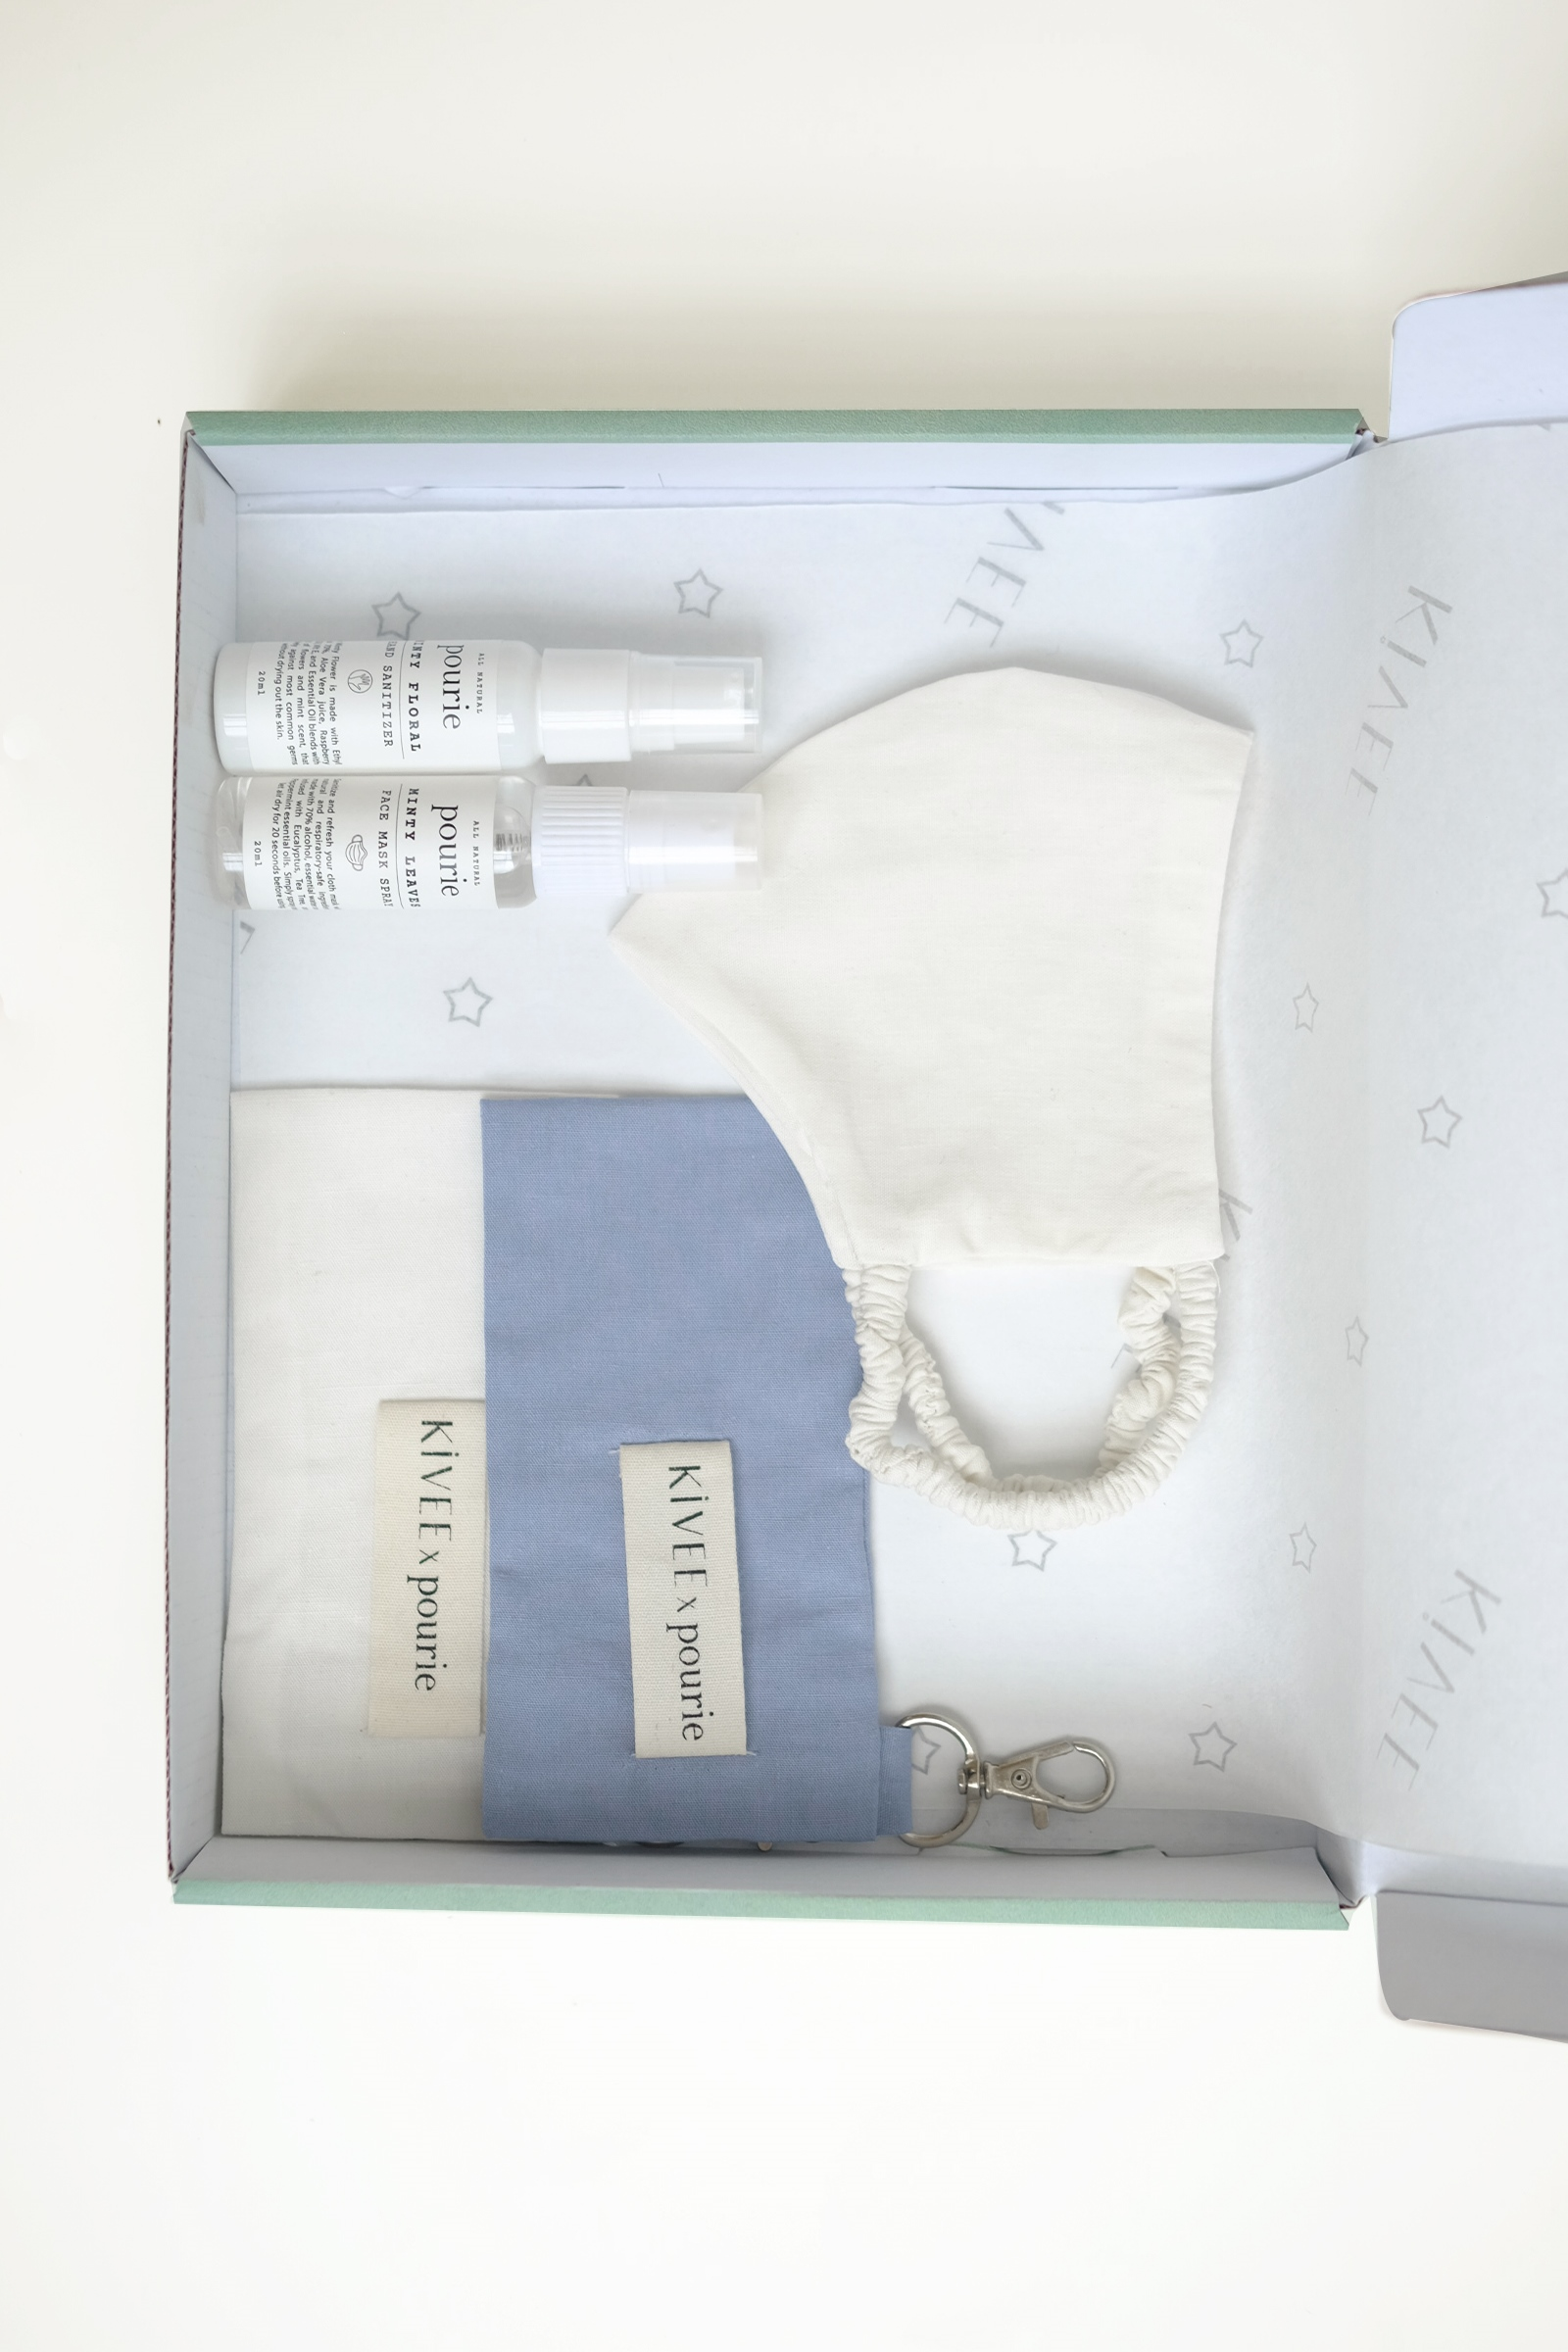 Picture of Kivee Home x Pourie Sanitizer And Face Mask Kit (Mask In Ivory)